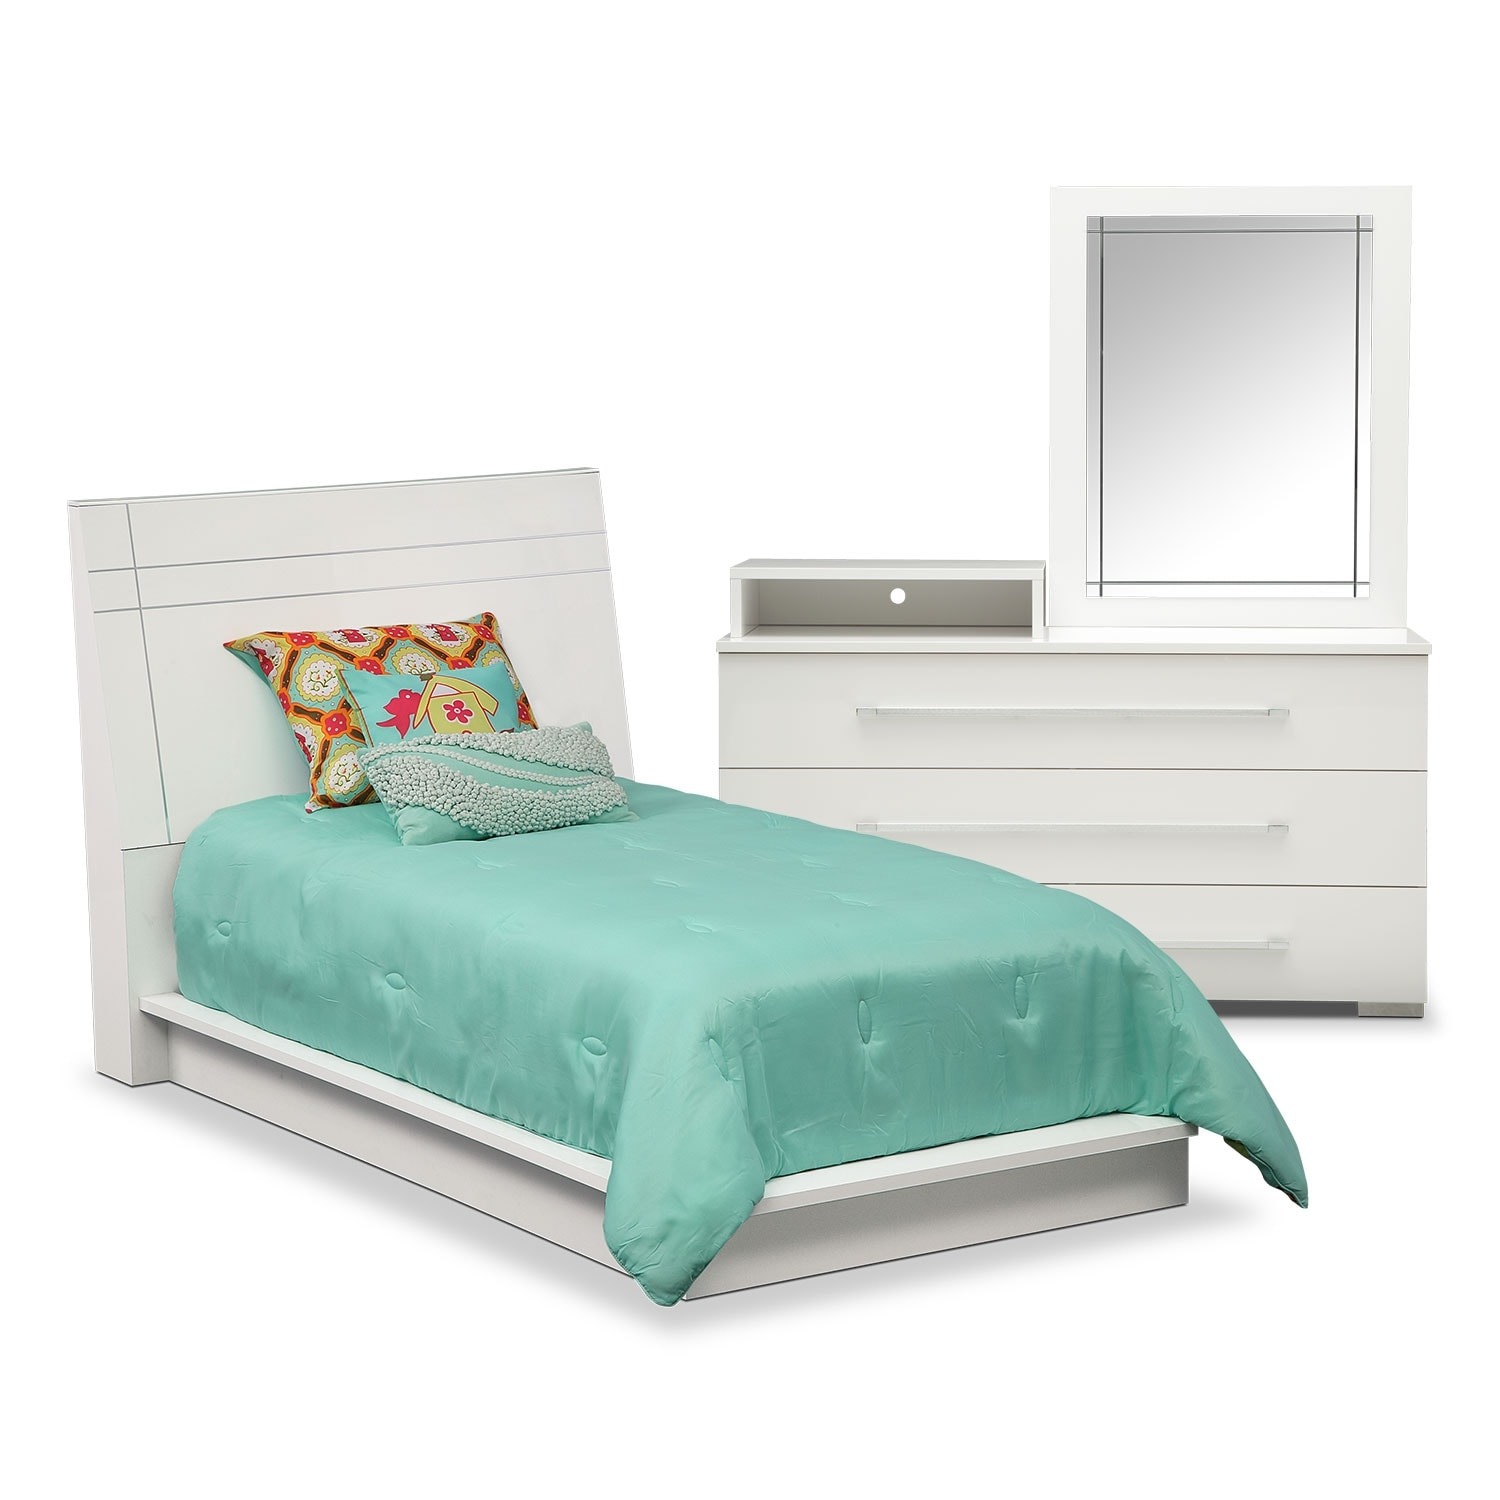 Bedroom Furniture - Dimora 5-Piece Twin Panel Bedroom Set with Media Dresser - White